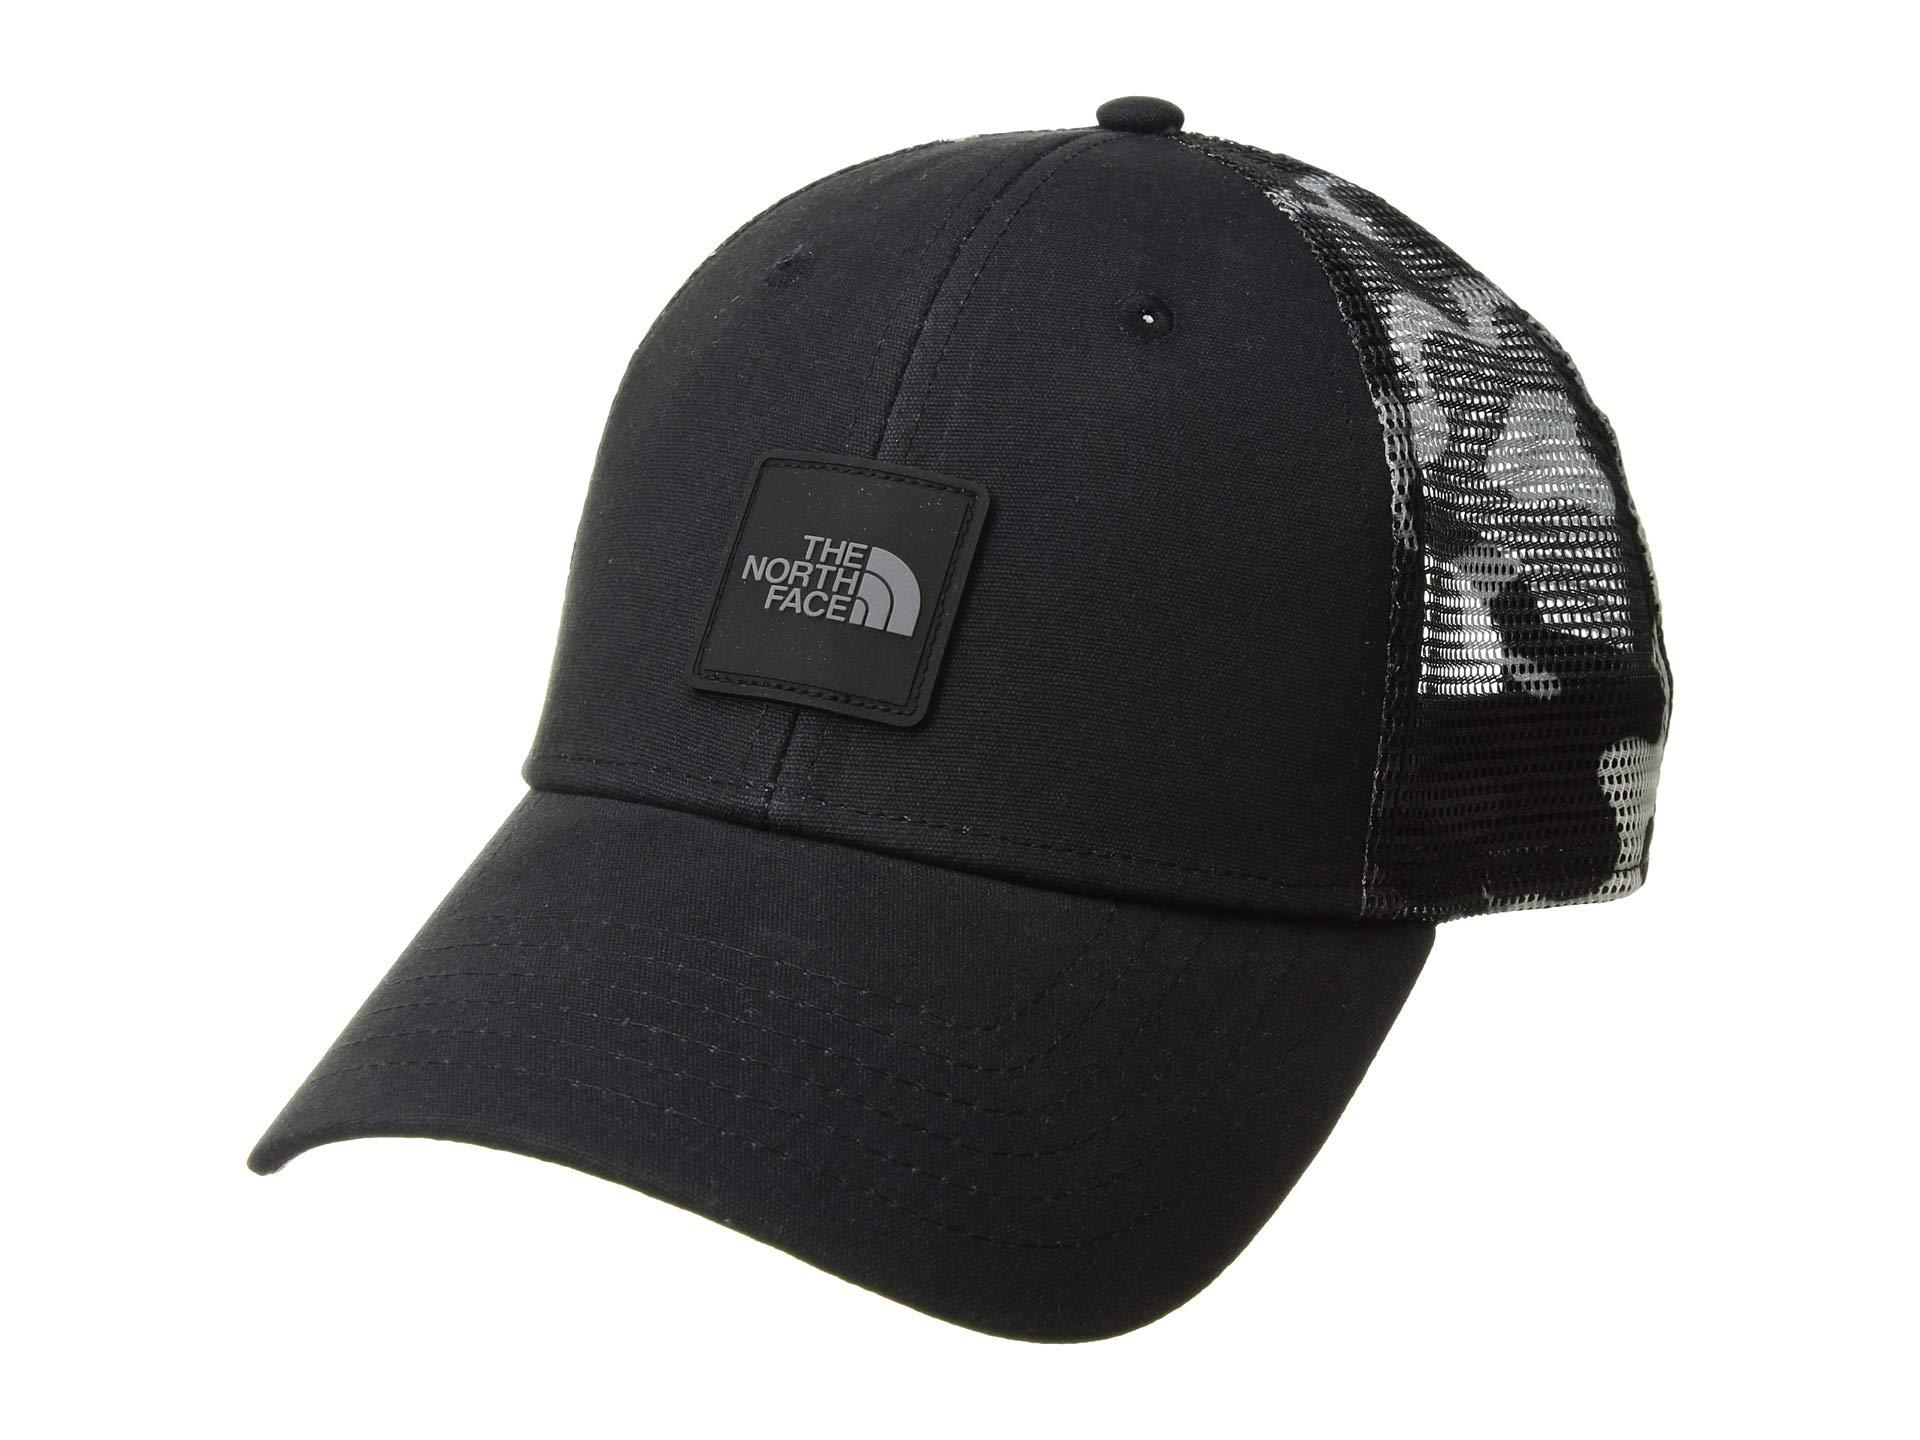 03c3290b4c3 Lyst - The North Face Mudder Novelty Mesh Trucker Hat (moab Khaki ...